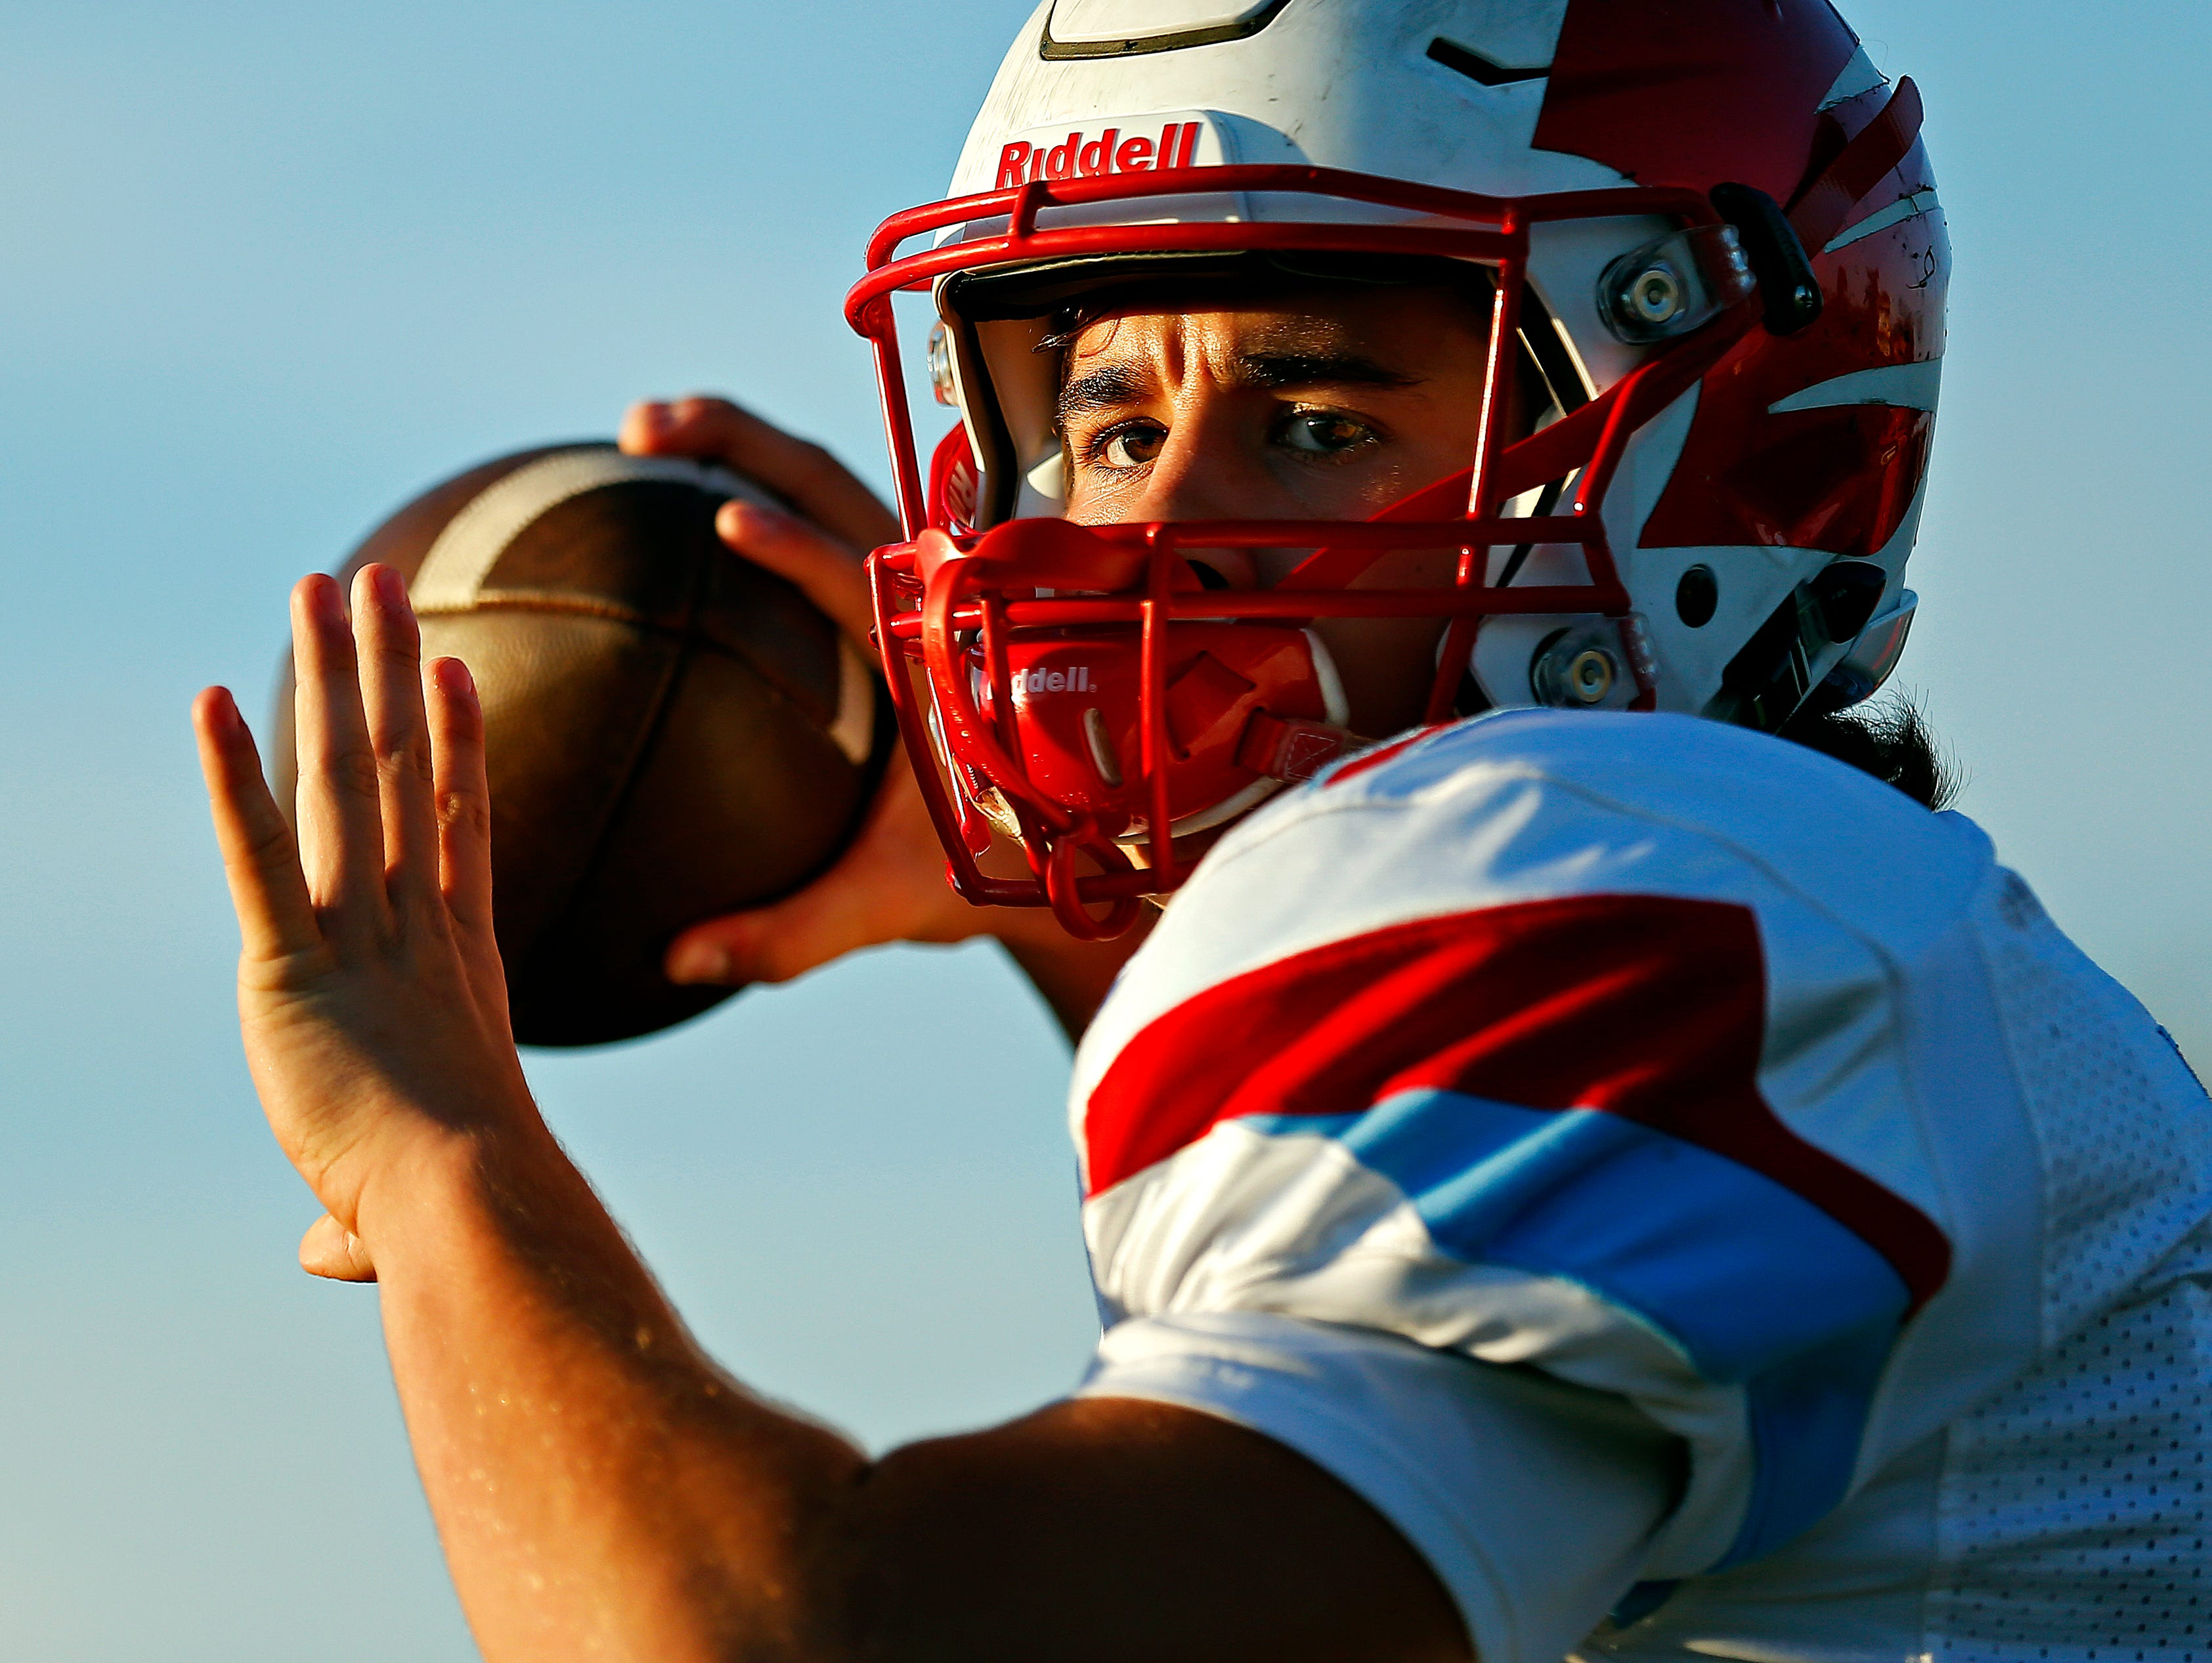 Glendale High School quarterback Alex Houston (7) warms up prior to the start of the football game between Glendale High School and Parkview High School at JFK Stadium in Springfield, Mo. on Sept. 22, 2016.